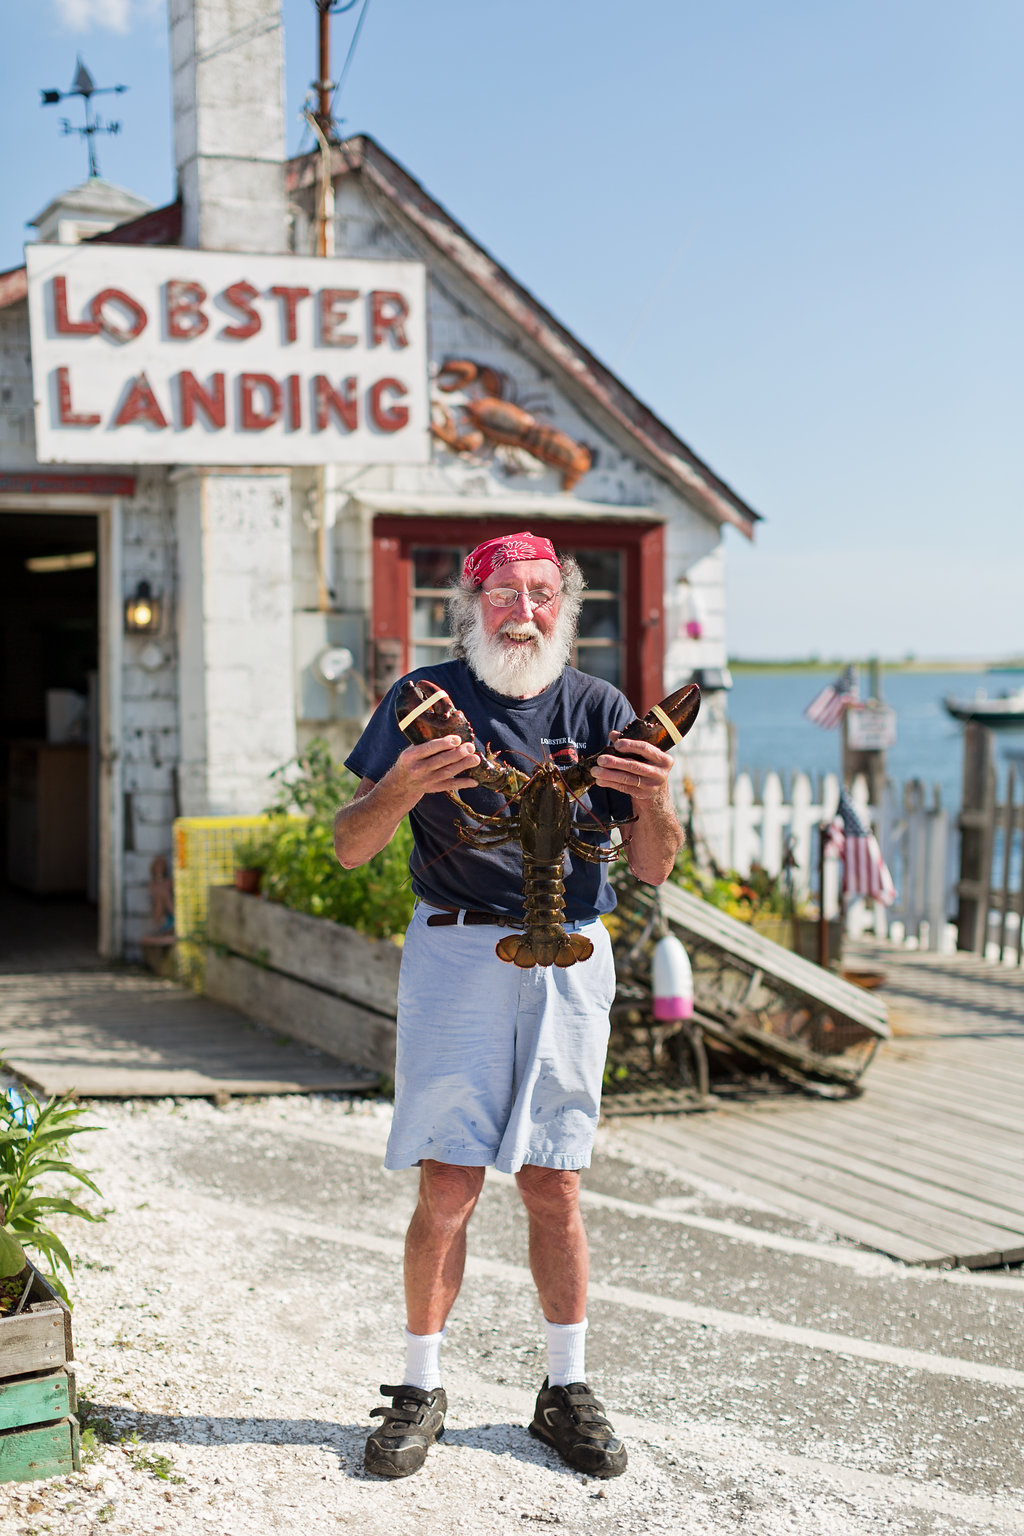 Lobster Landing Restaurant Clinton CT CT Eats Out.jpg.jpg